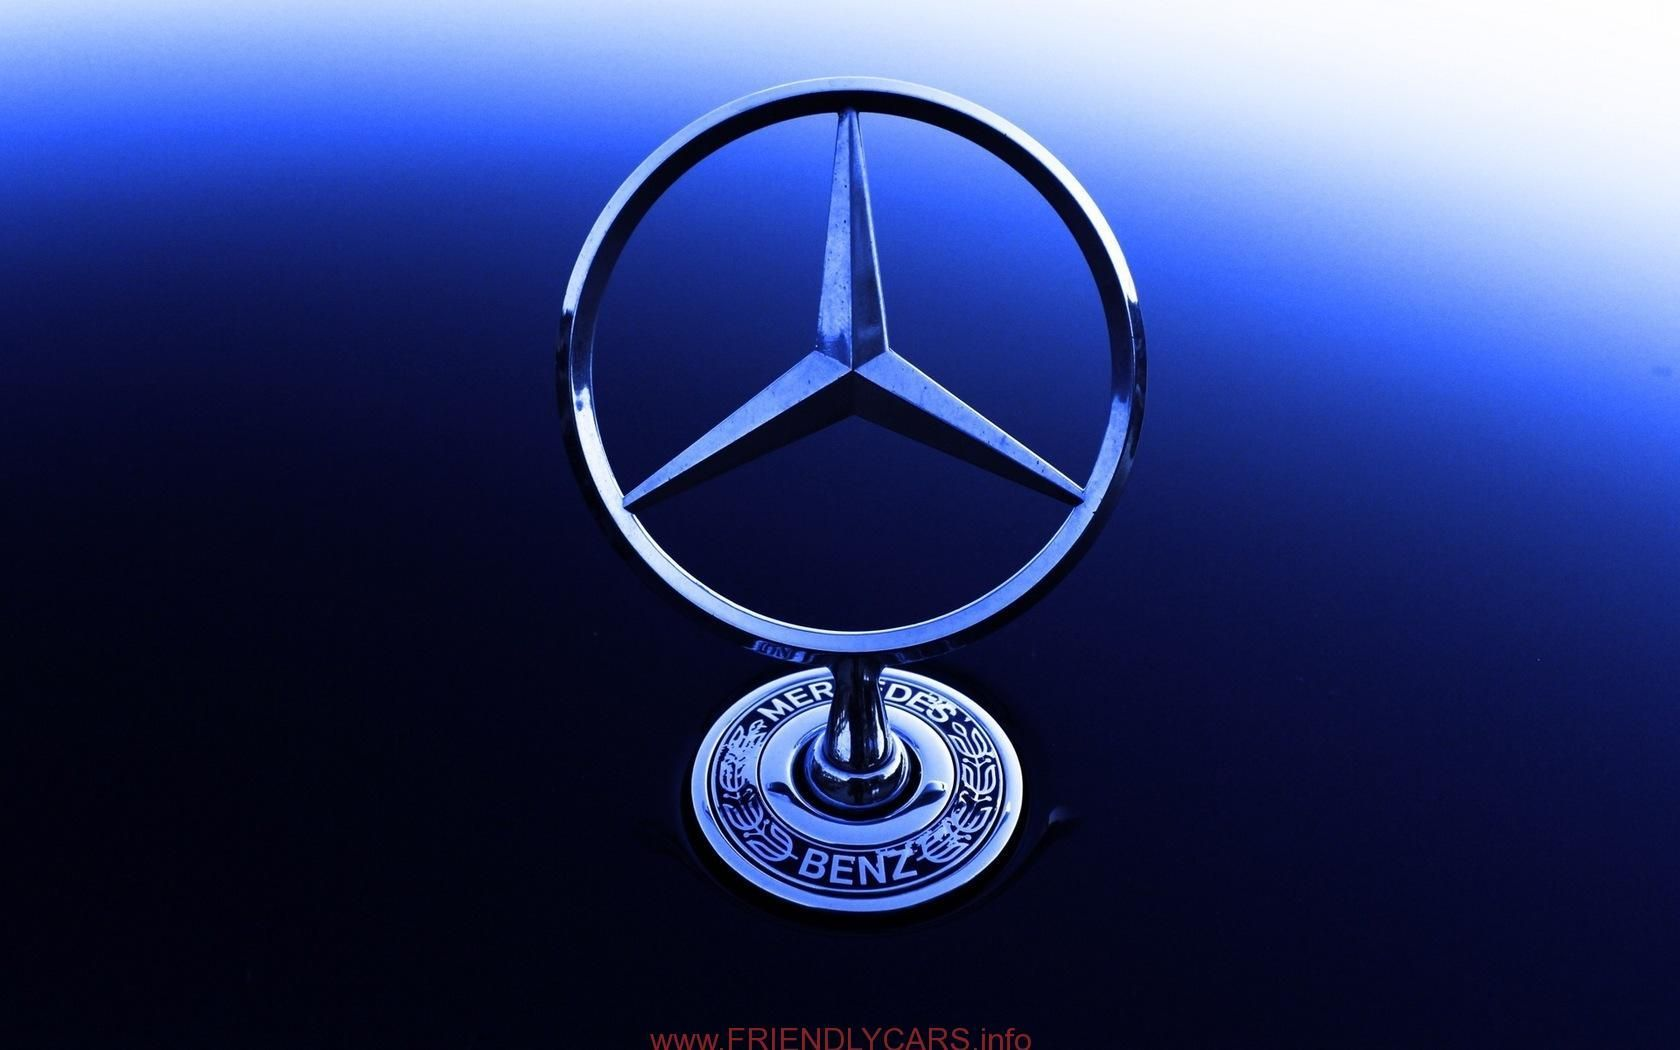 cool mercedes logo wallpaper iphone car images hd roundup 40 amazing